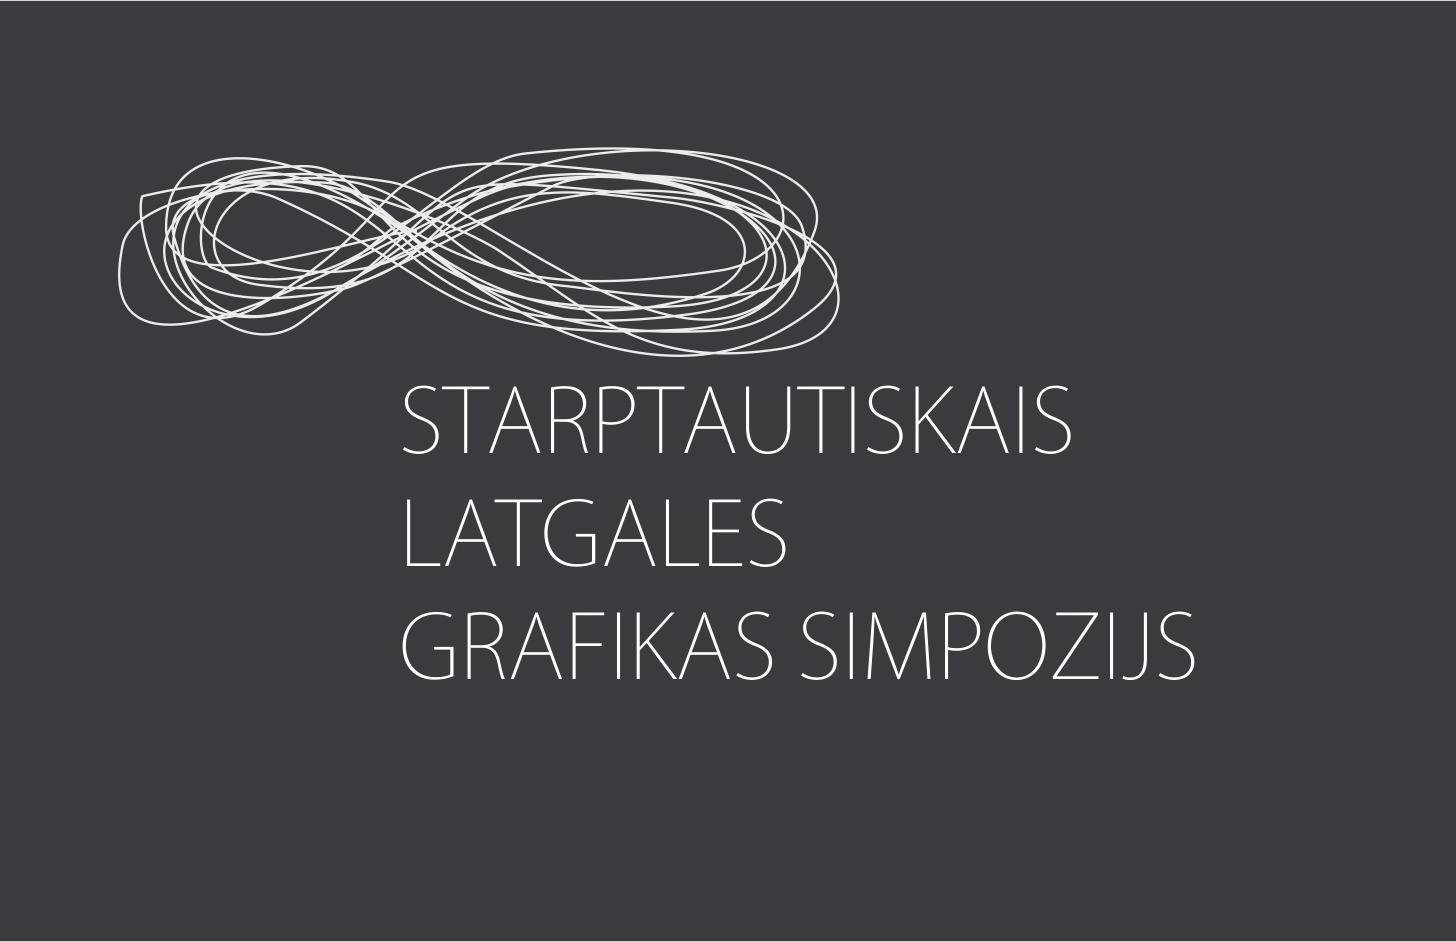 Daugavpils to host the International Latgale Graphic Art Symposium